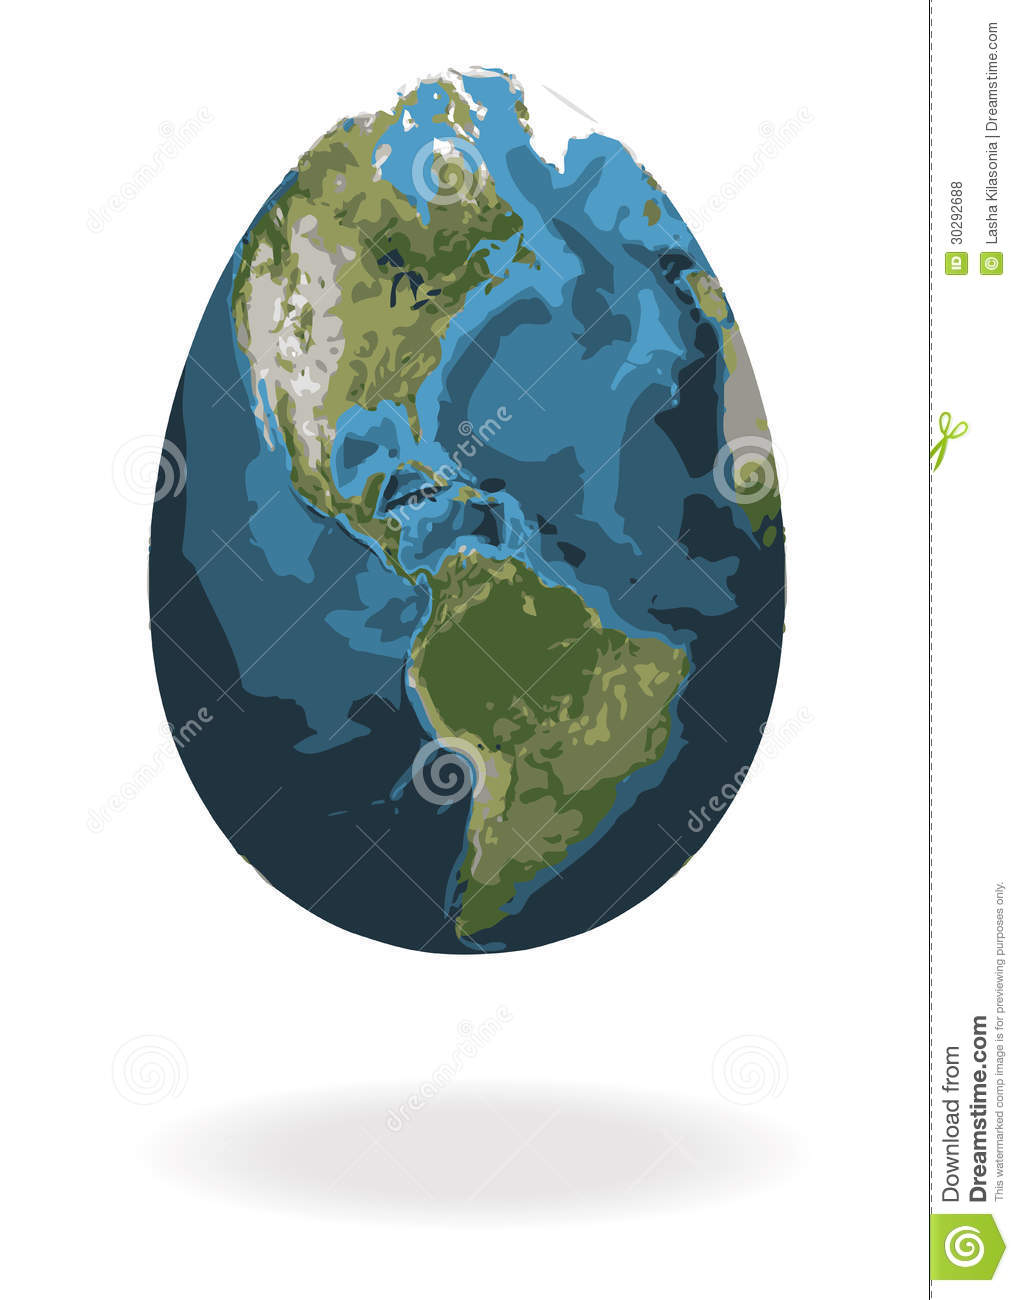 easter egg with world map stock illustration  image of icon